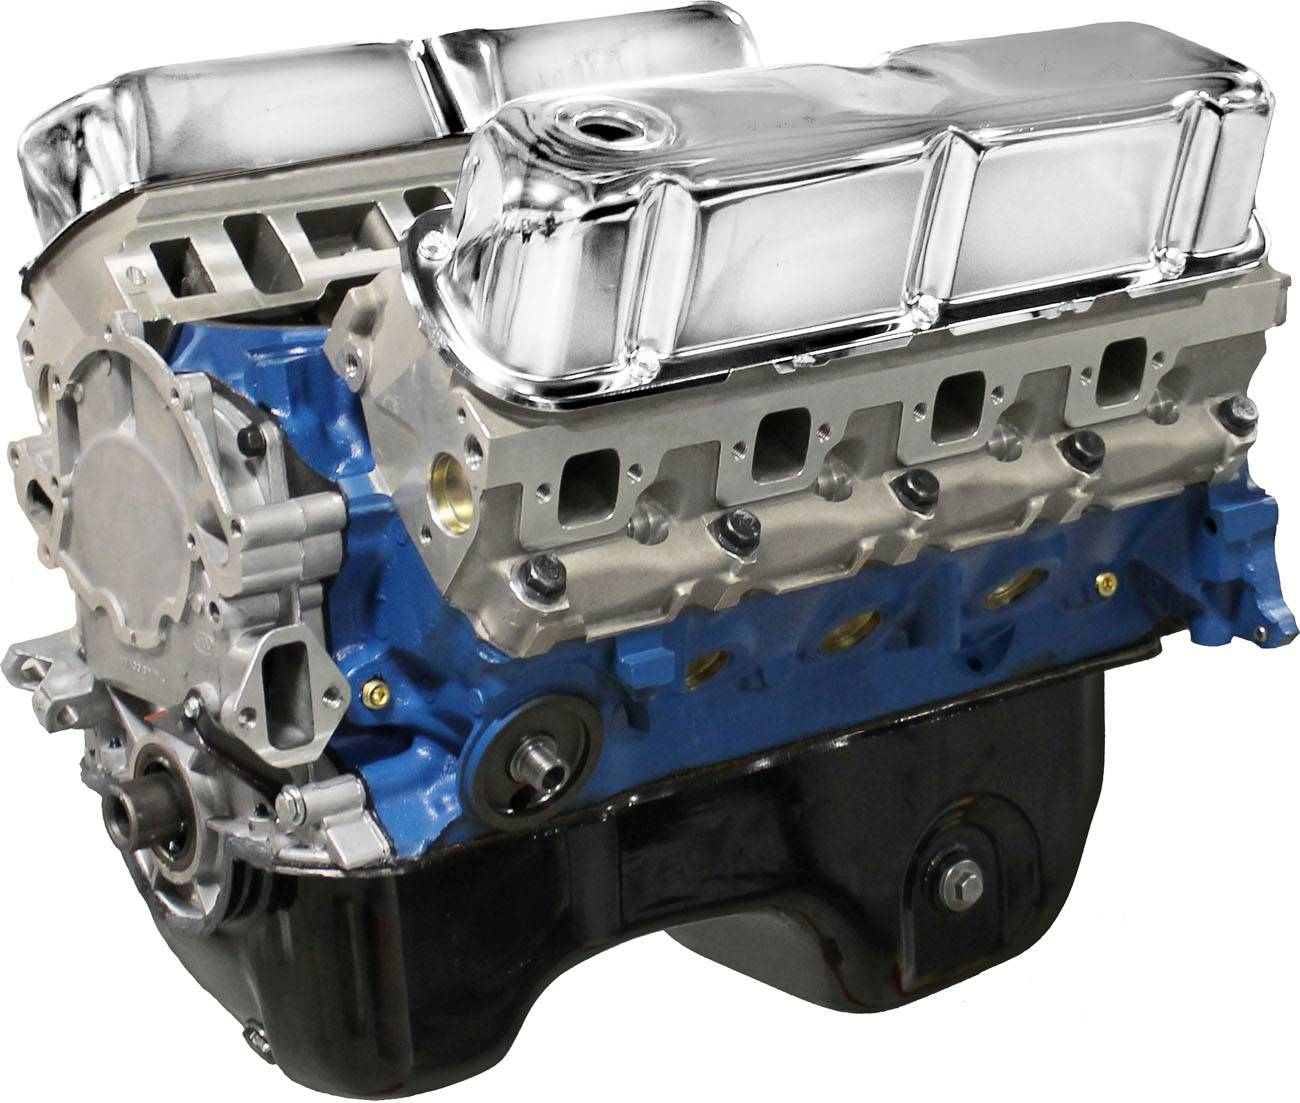 Bp3060ct blueprint engines 306ci crate engine small block ford blue print bp3060ct blueprint engines 306ci crate engine small block ford style longblock malvernweather Choice Image